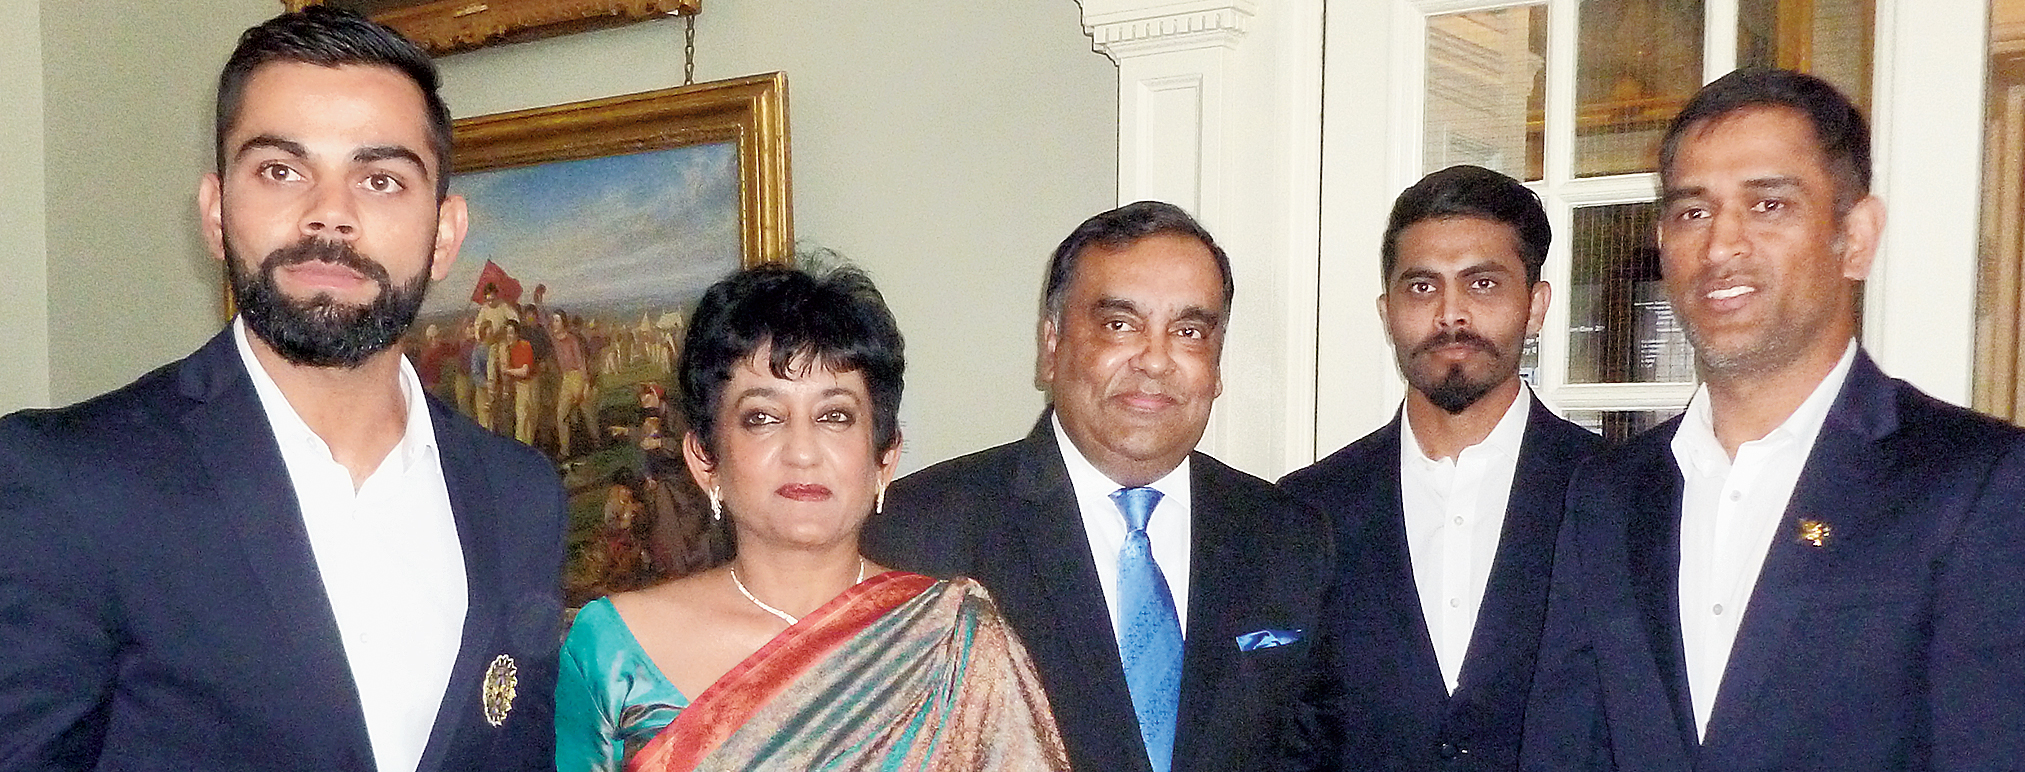 Yashvardhan Kumar Sinha (centre, with tie) and wife Girija Sinha in the Long Room at Lord's with Virat Kohli (left) and MS Dhoni (right) in June 2017